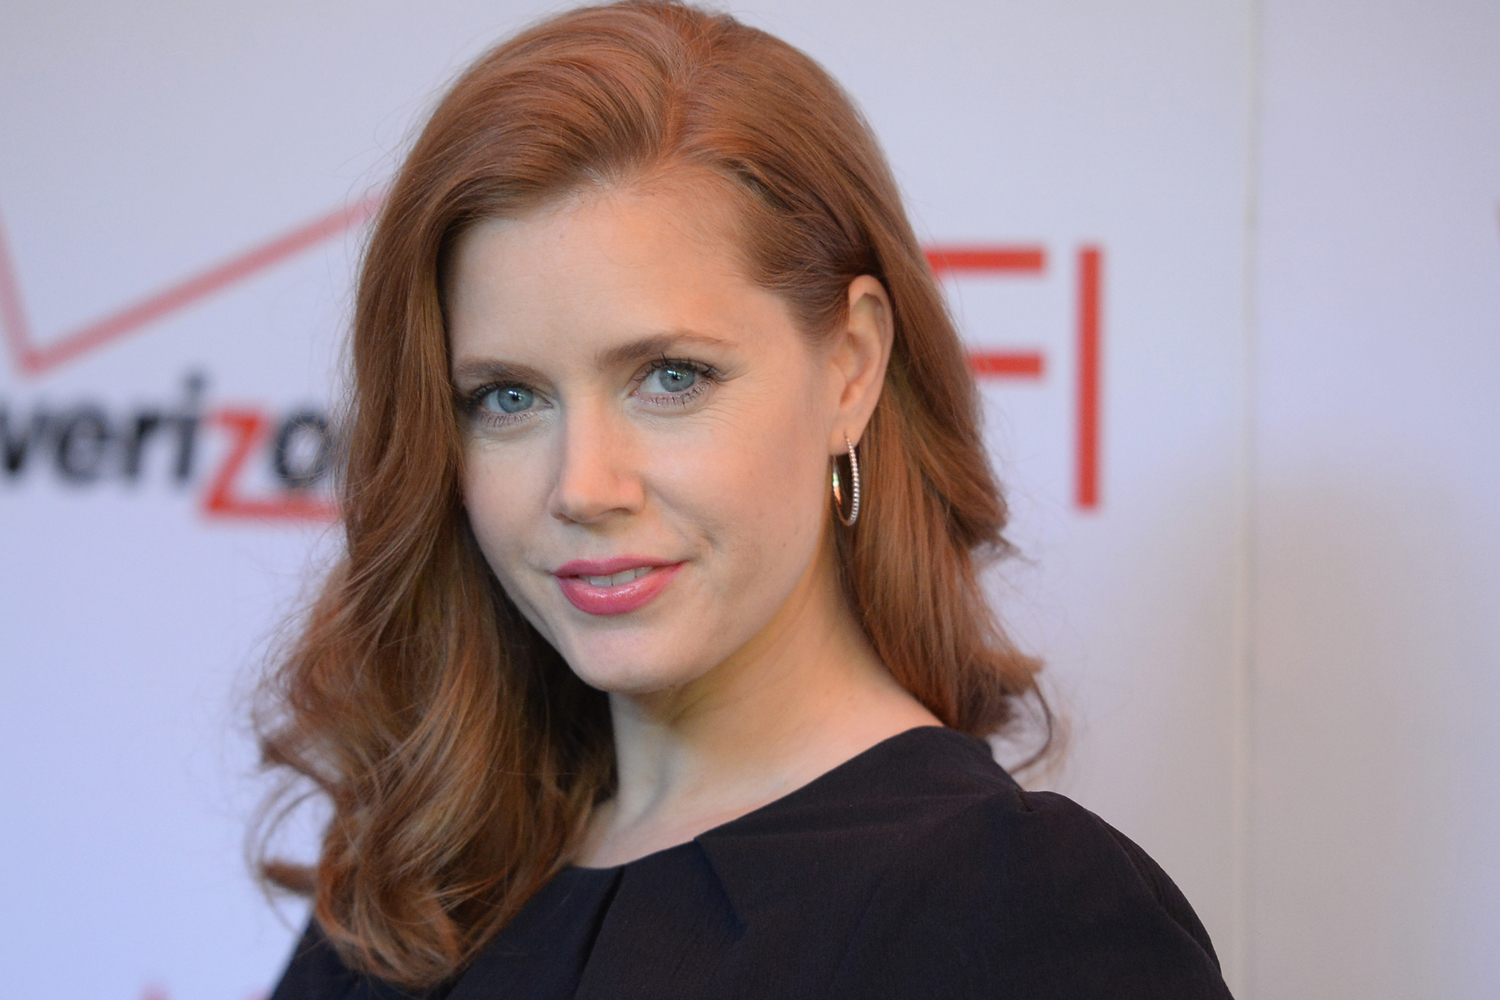 AMY ADAMS' TOP 5 EXTERNAL HARD DRIVES